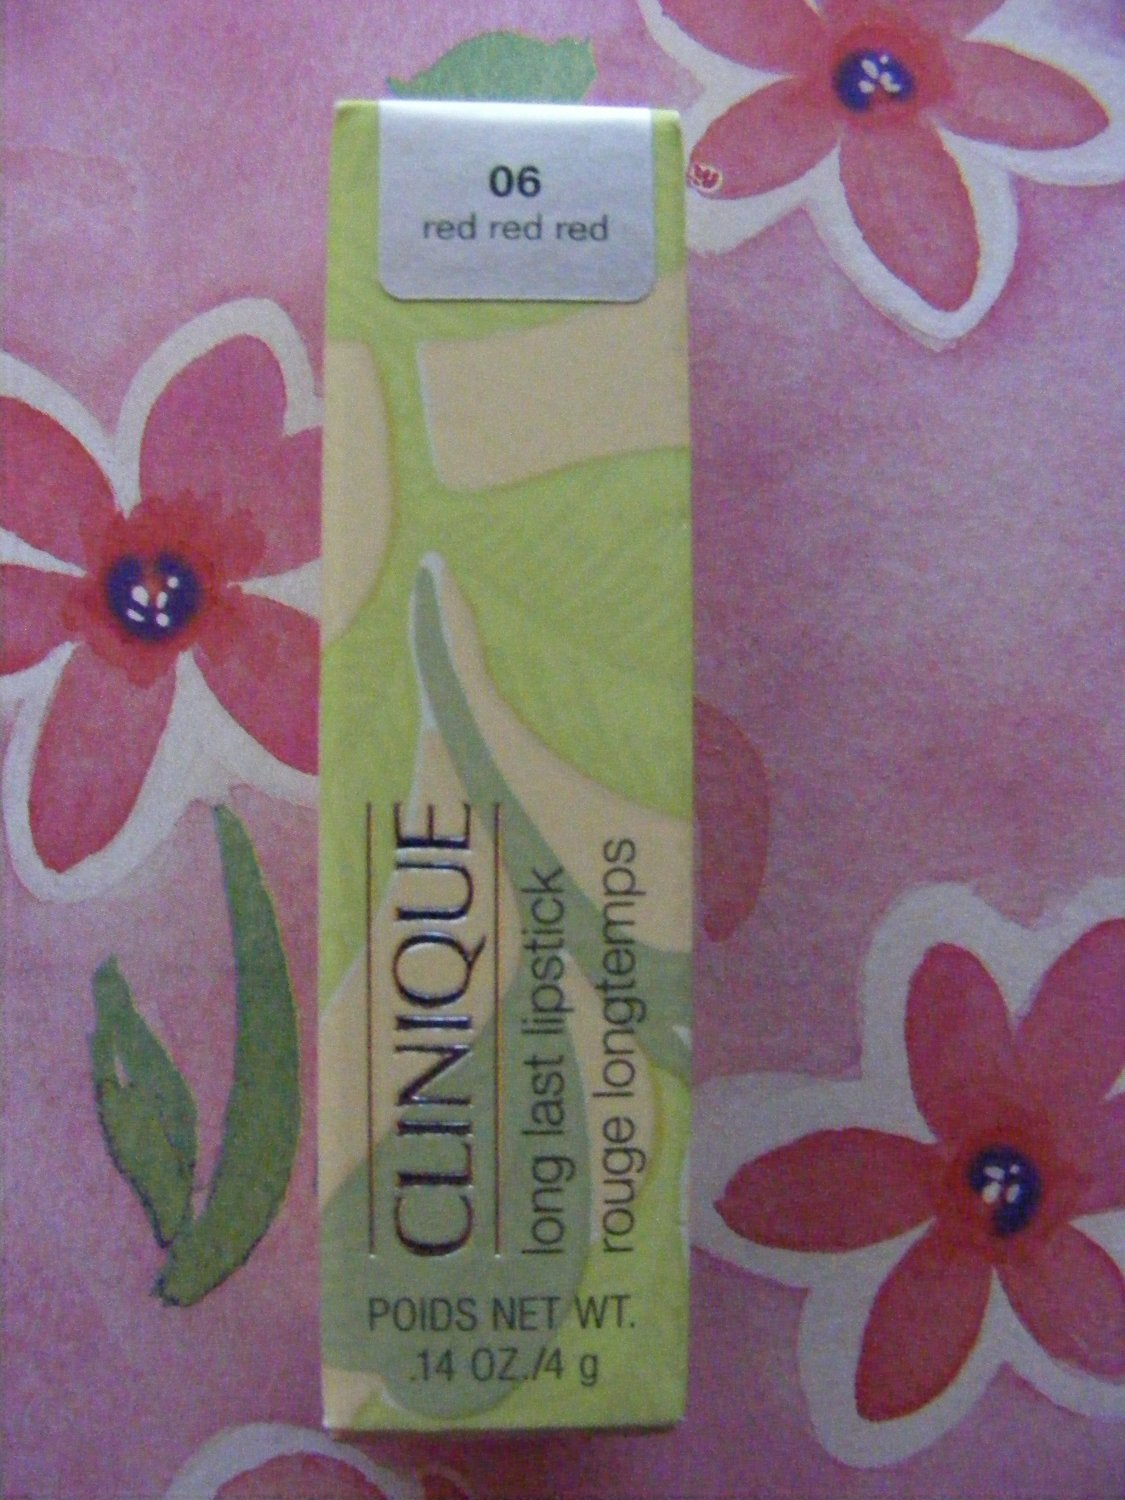 Clinique Red Red Red 06 Long Last Lipstick New in Box!